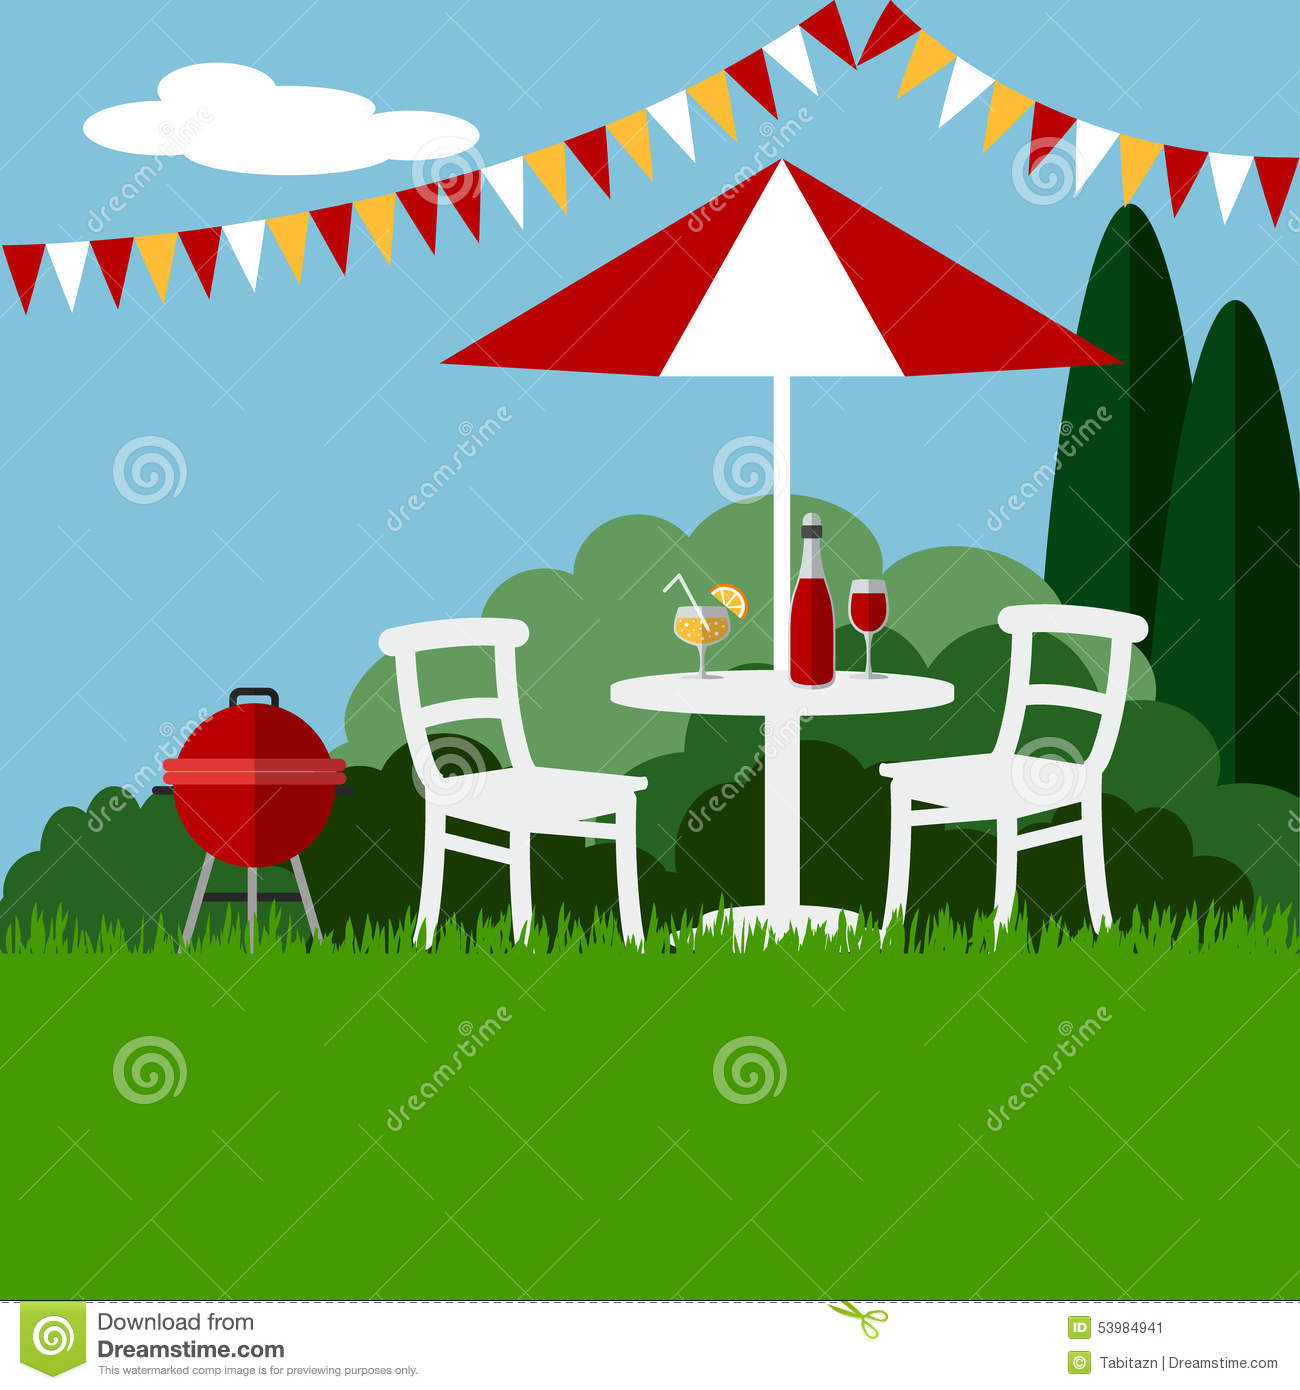 Garden Party Clipart.